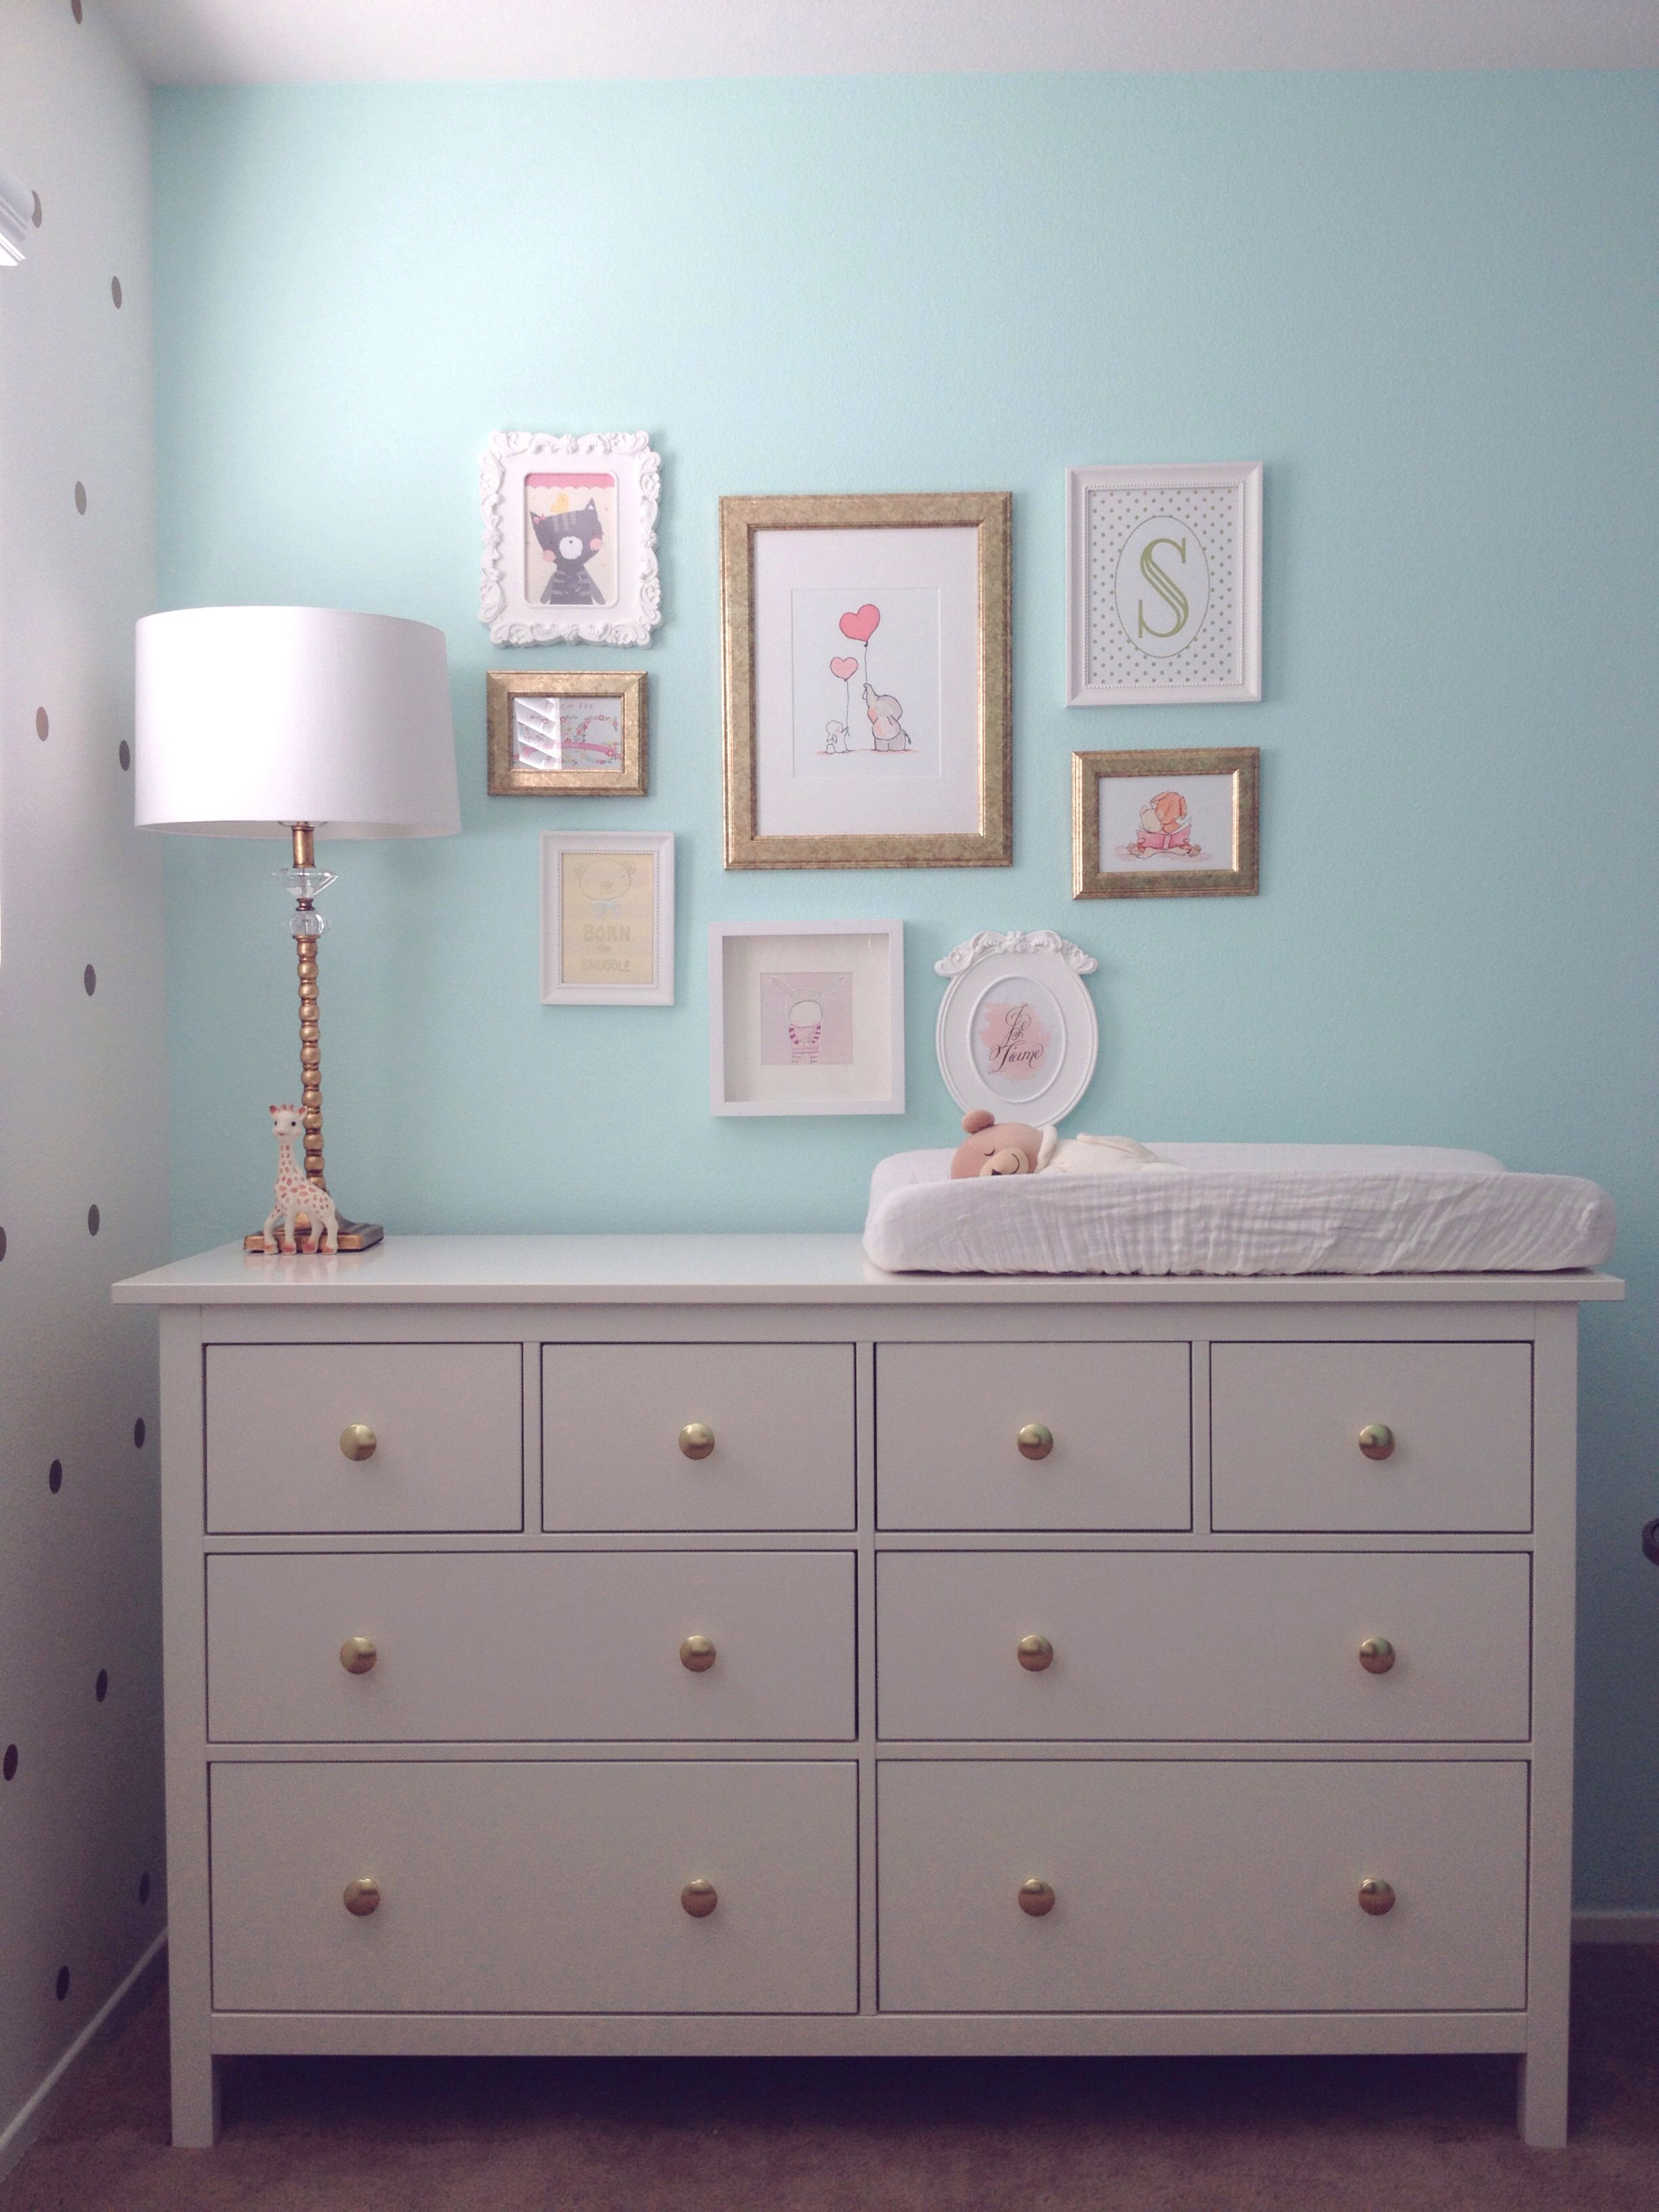 Mint & gold nursery.   Frames from IKEA. HEMNES dresser from IKEA. Gold knobs from Land of Nod.